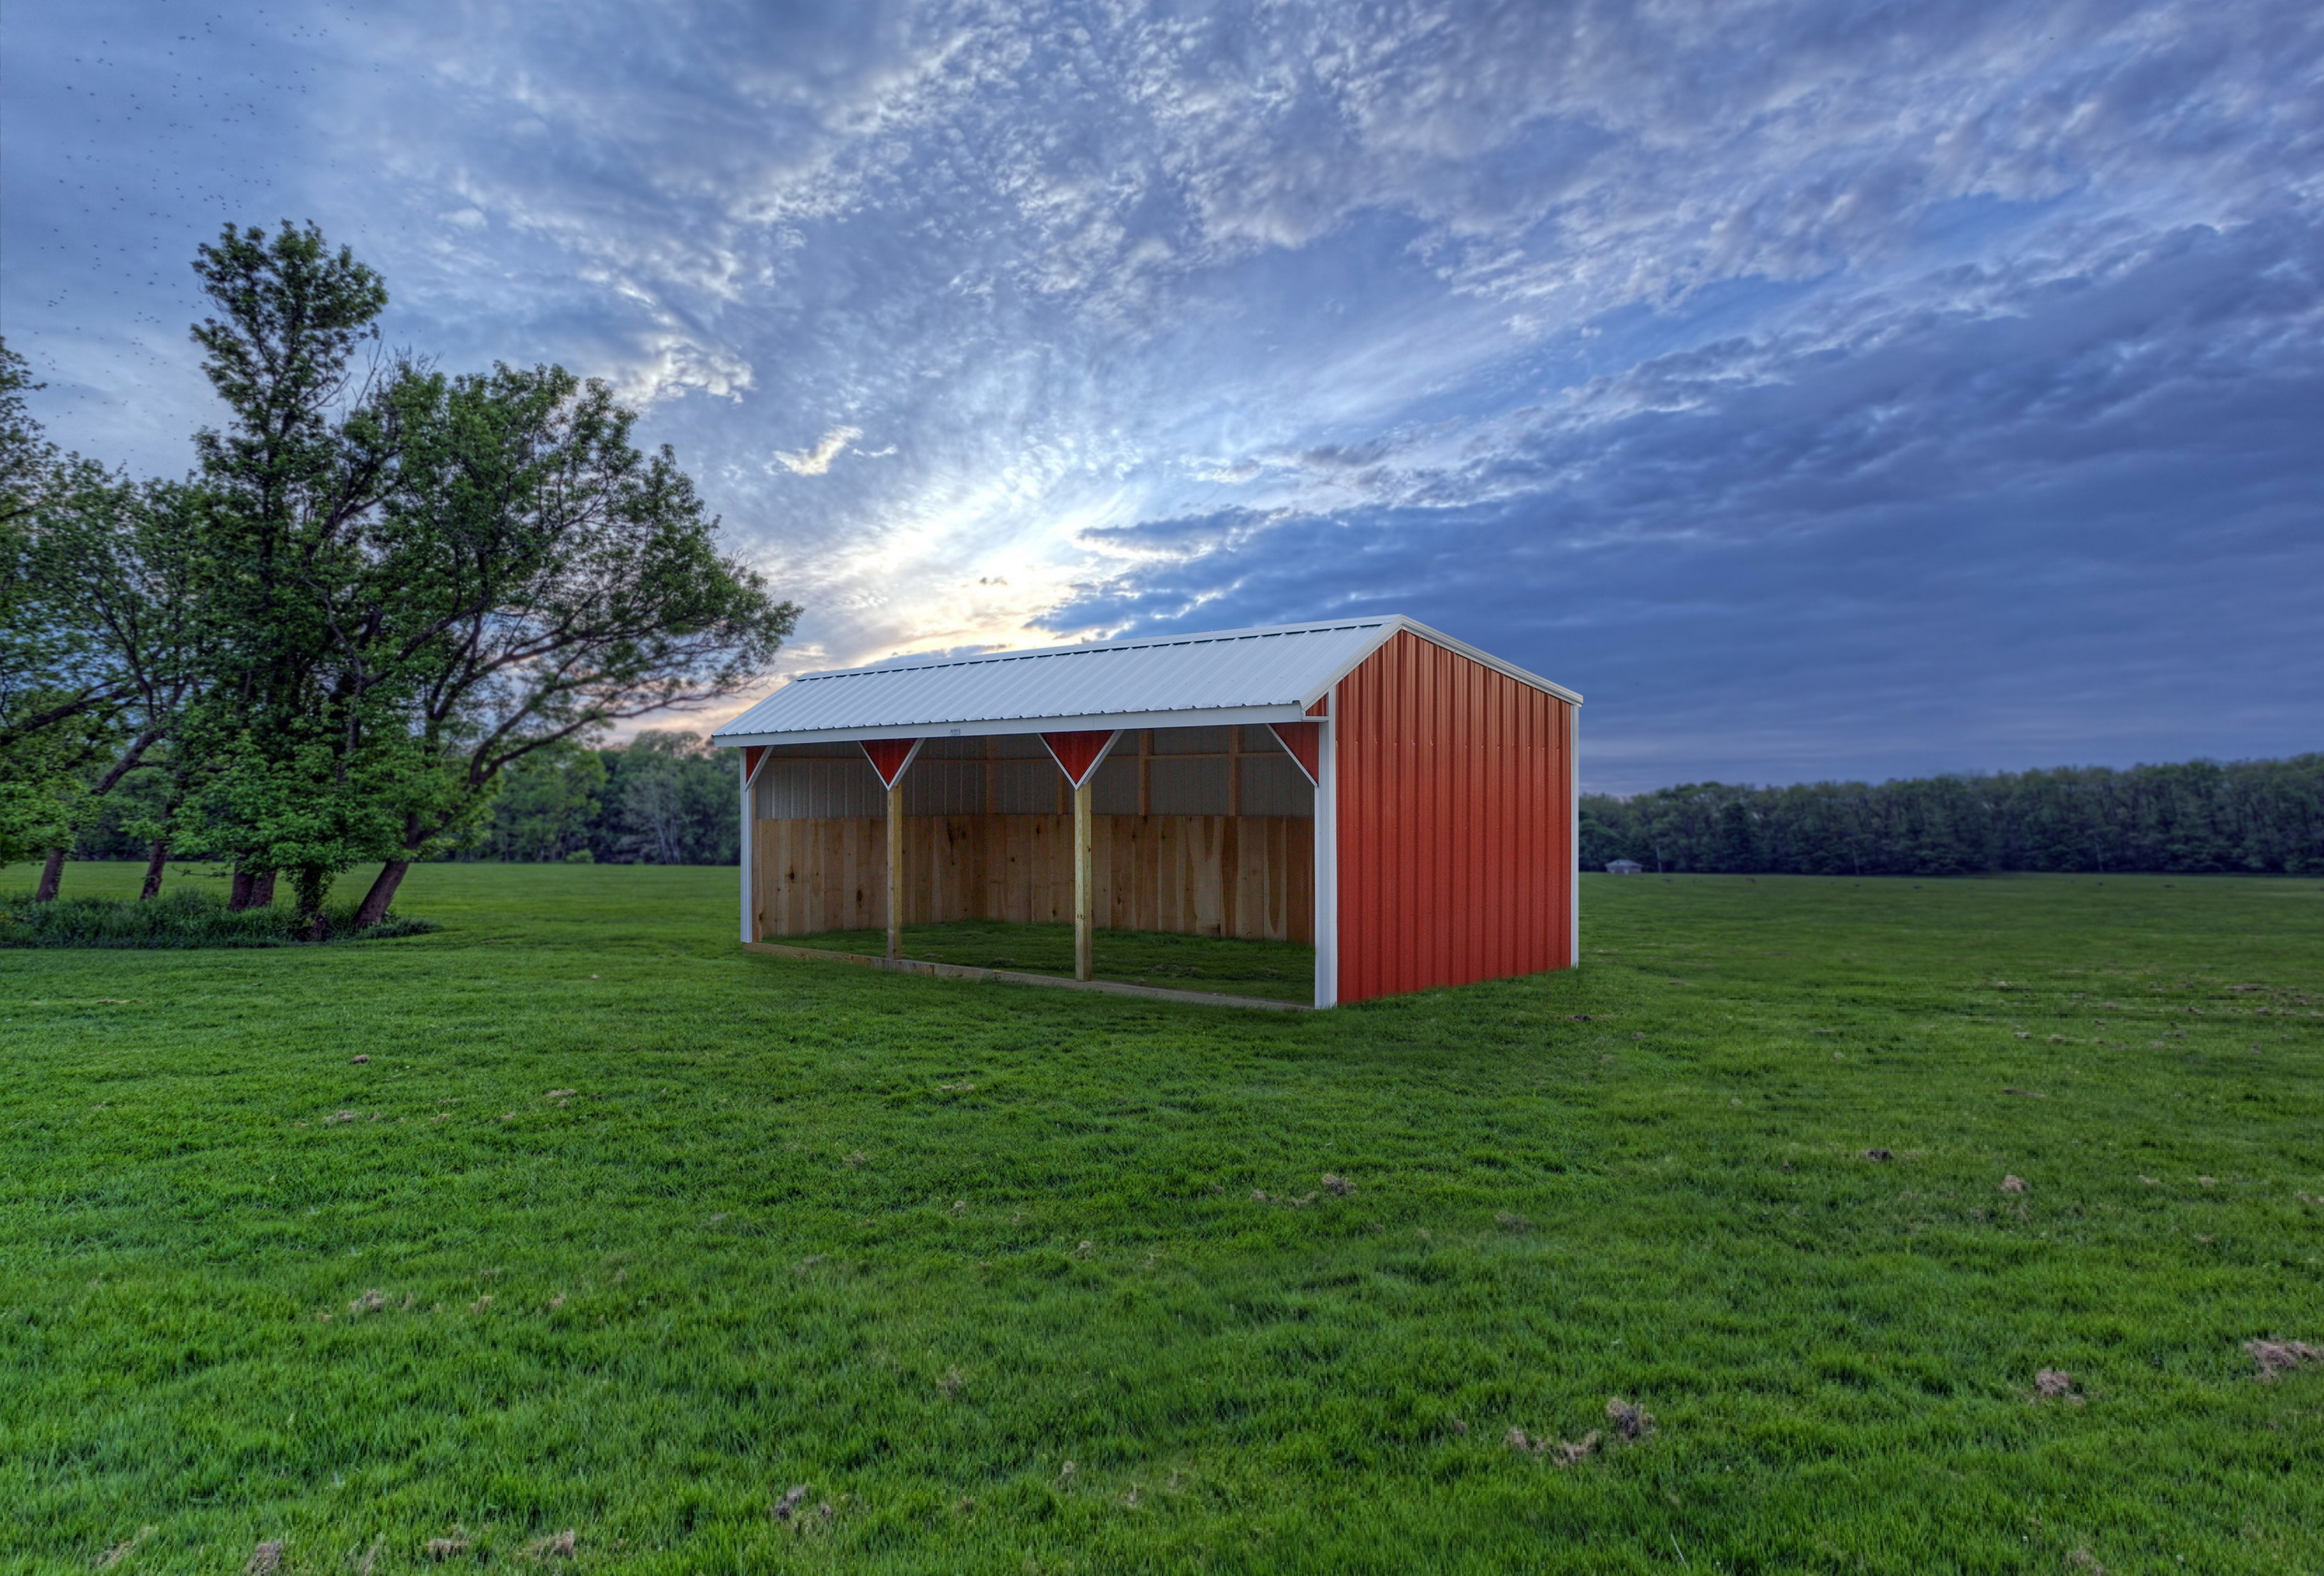 Red horse barn in an open pasture against a blue sky with clouds